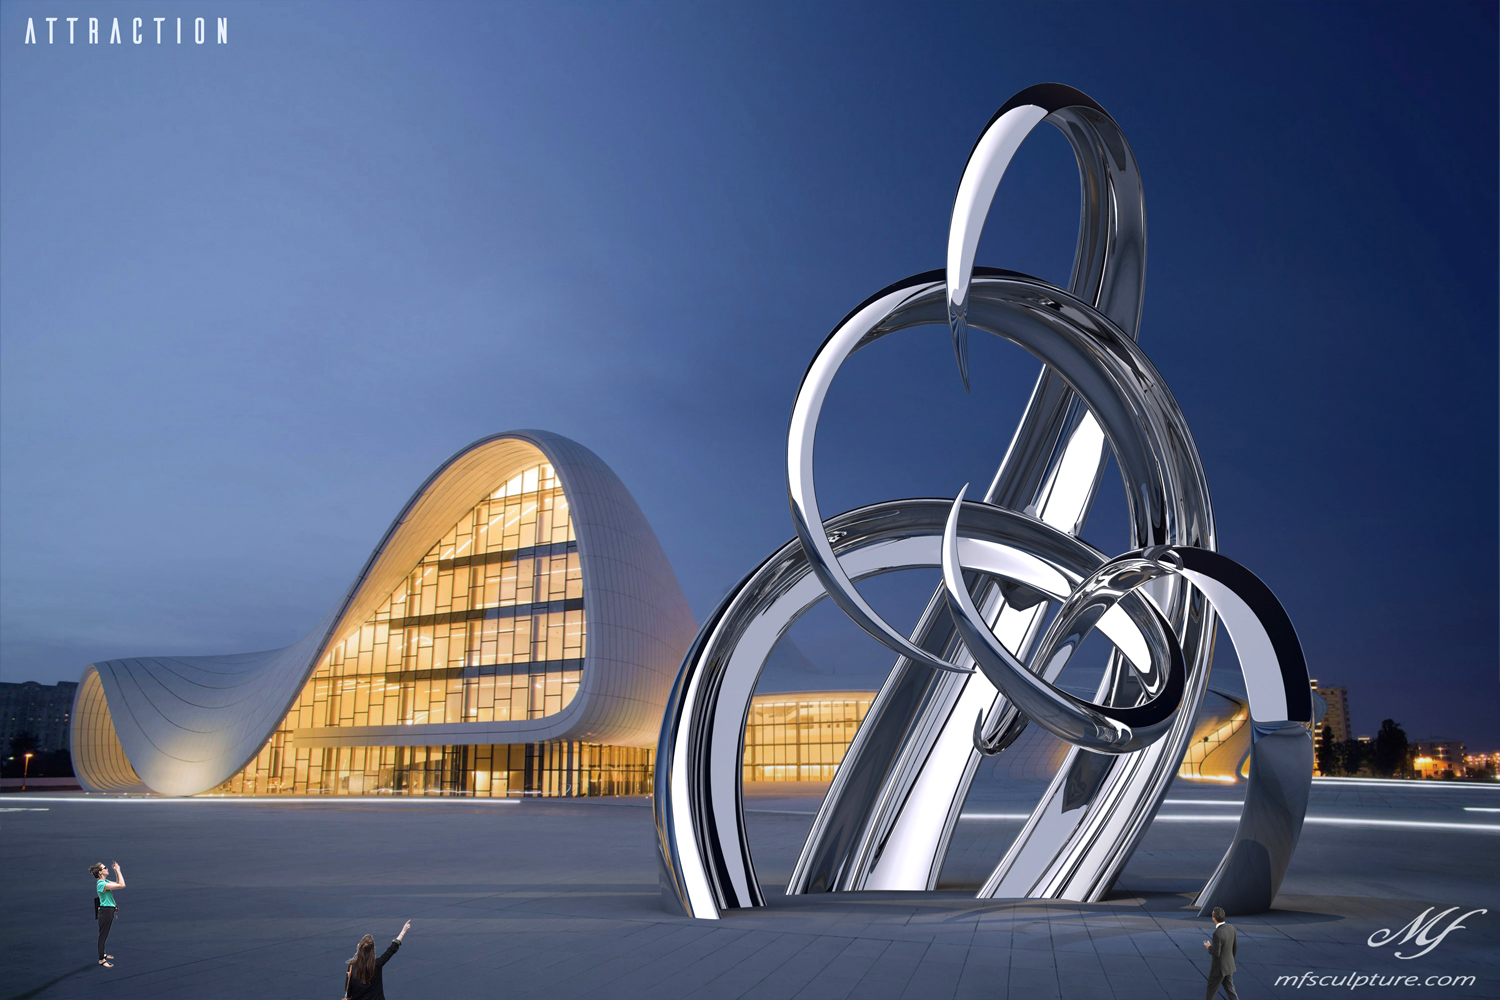 Contemporary Sculpture Heydar Aliyev Centre Baku Azerbaijan Attraction